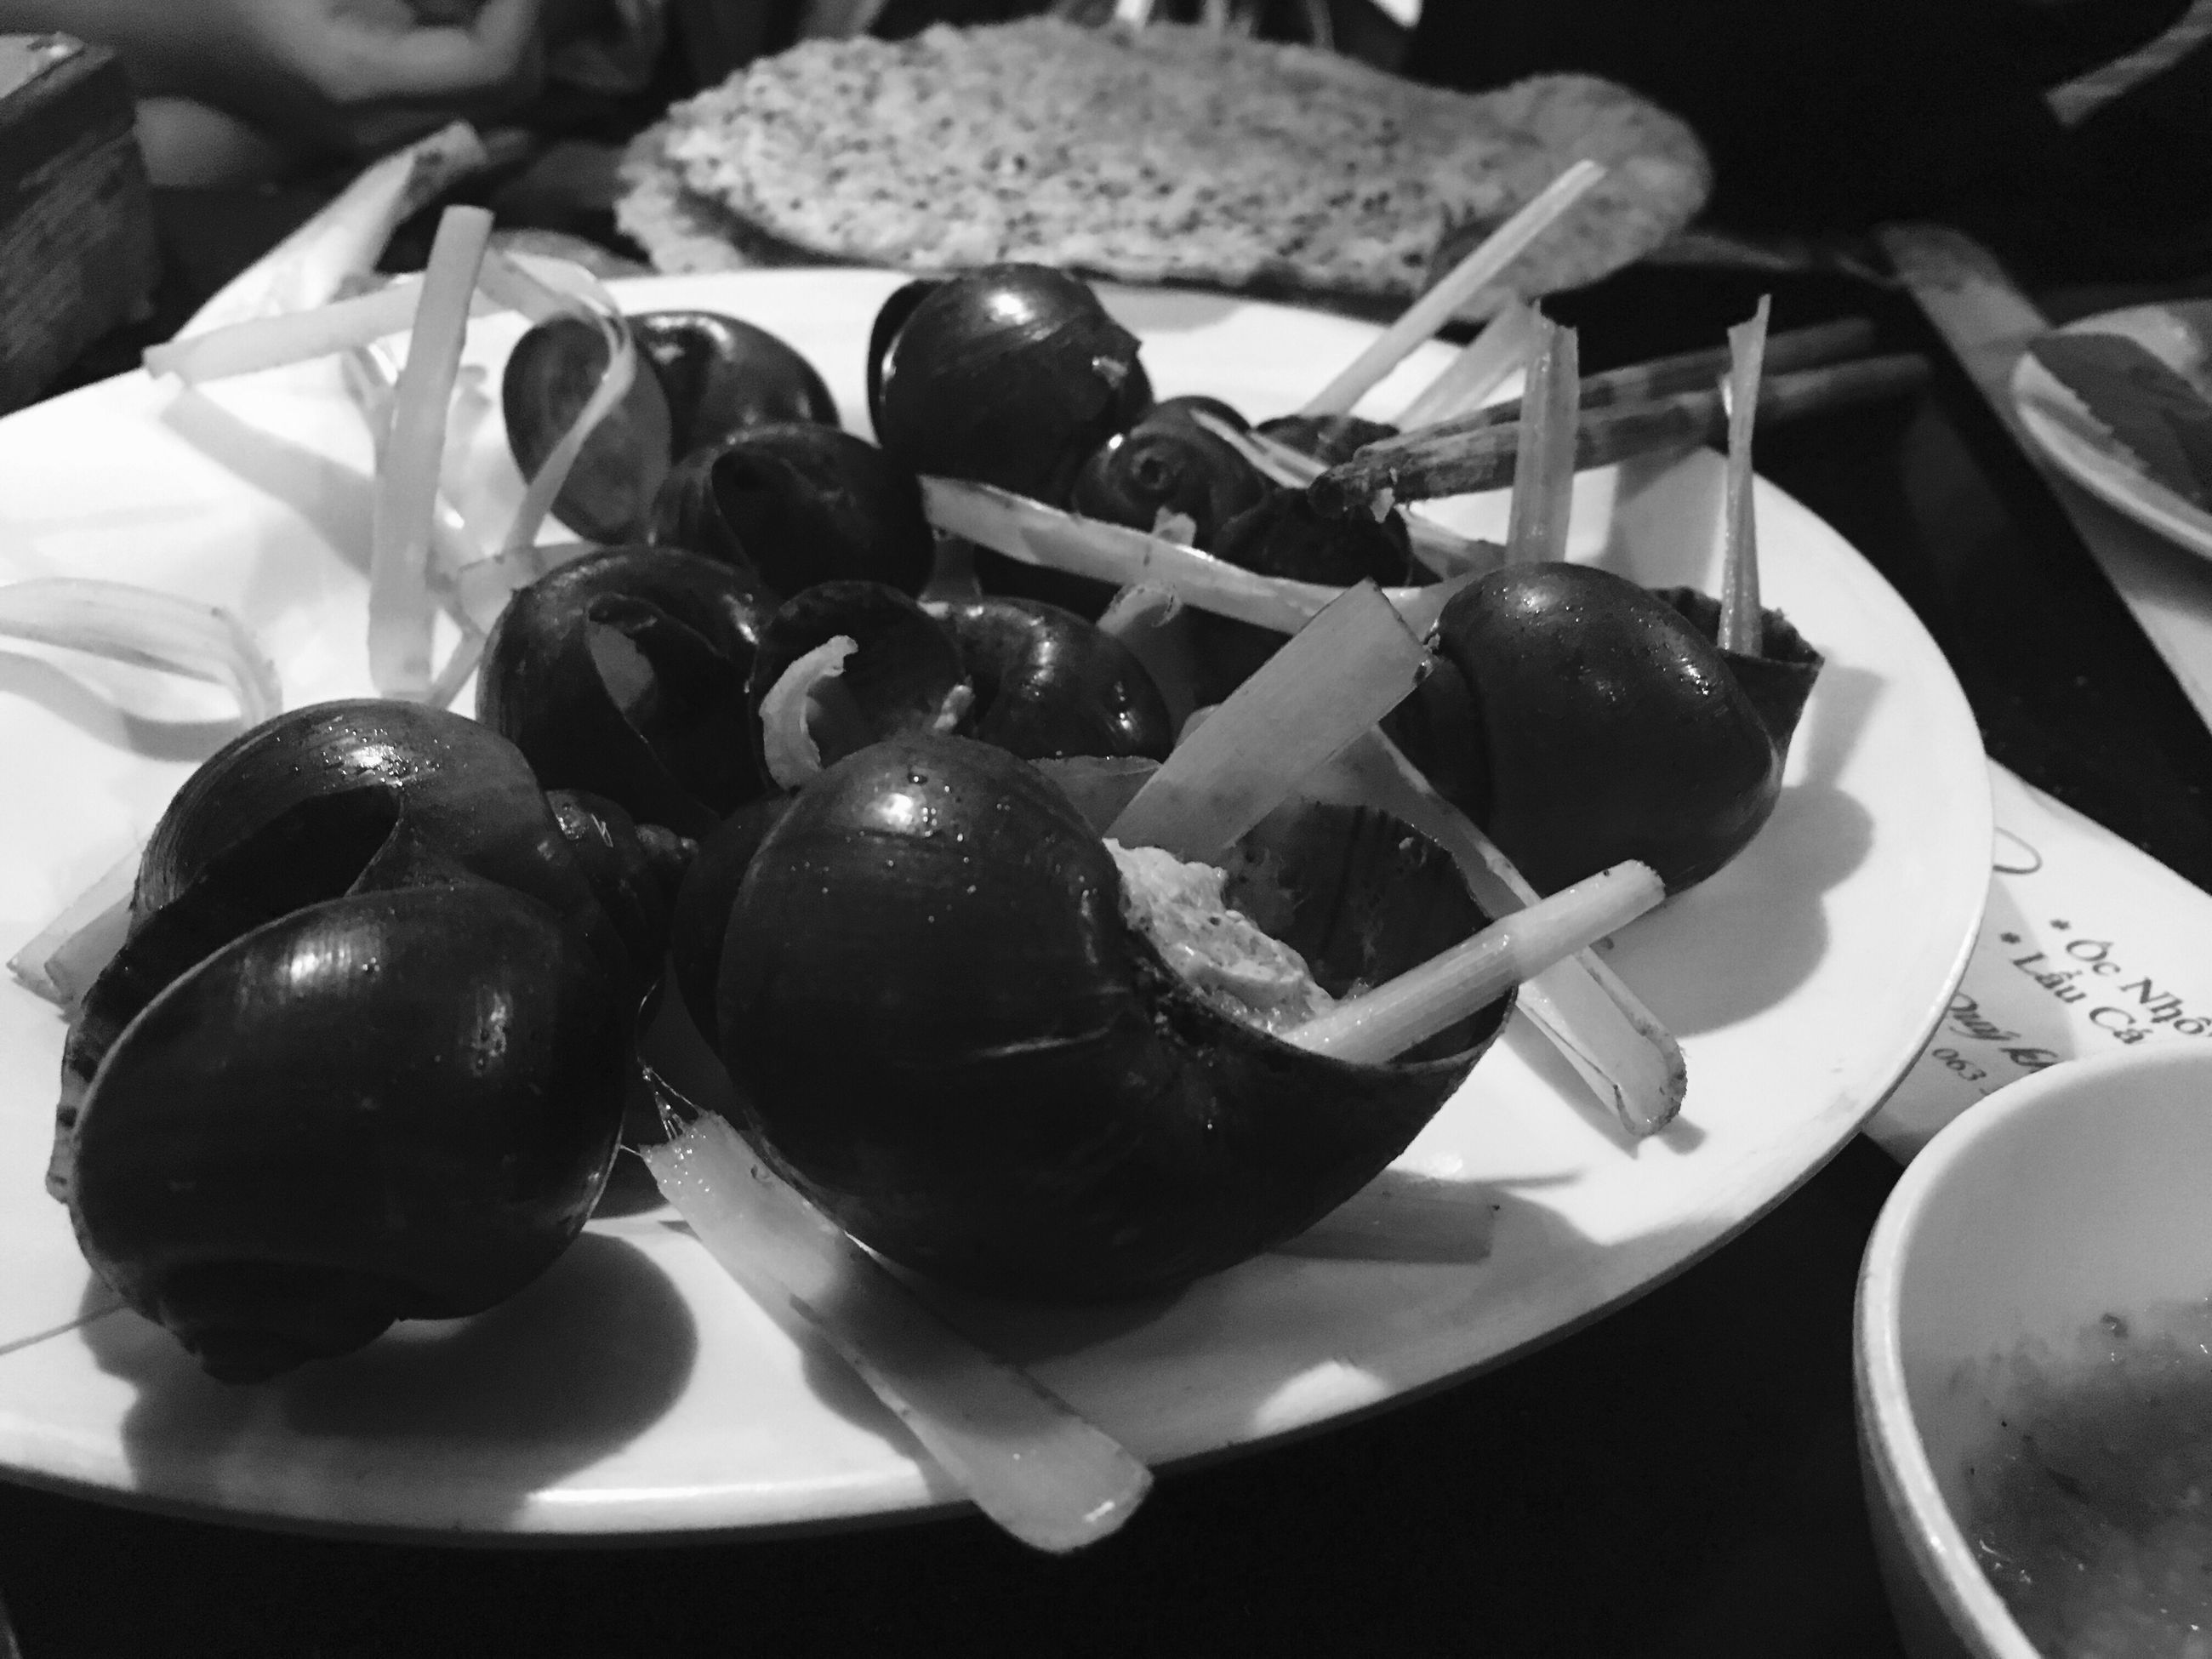 food and drink, food, close-up, black color, freshness, fruit, indoors, chocolate, ready-to-eat, plate, dessert, elevated view, abundance, indulgence, large group of objects, appetizer, focus on foreground, berry, dessert topping, serving size